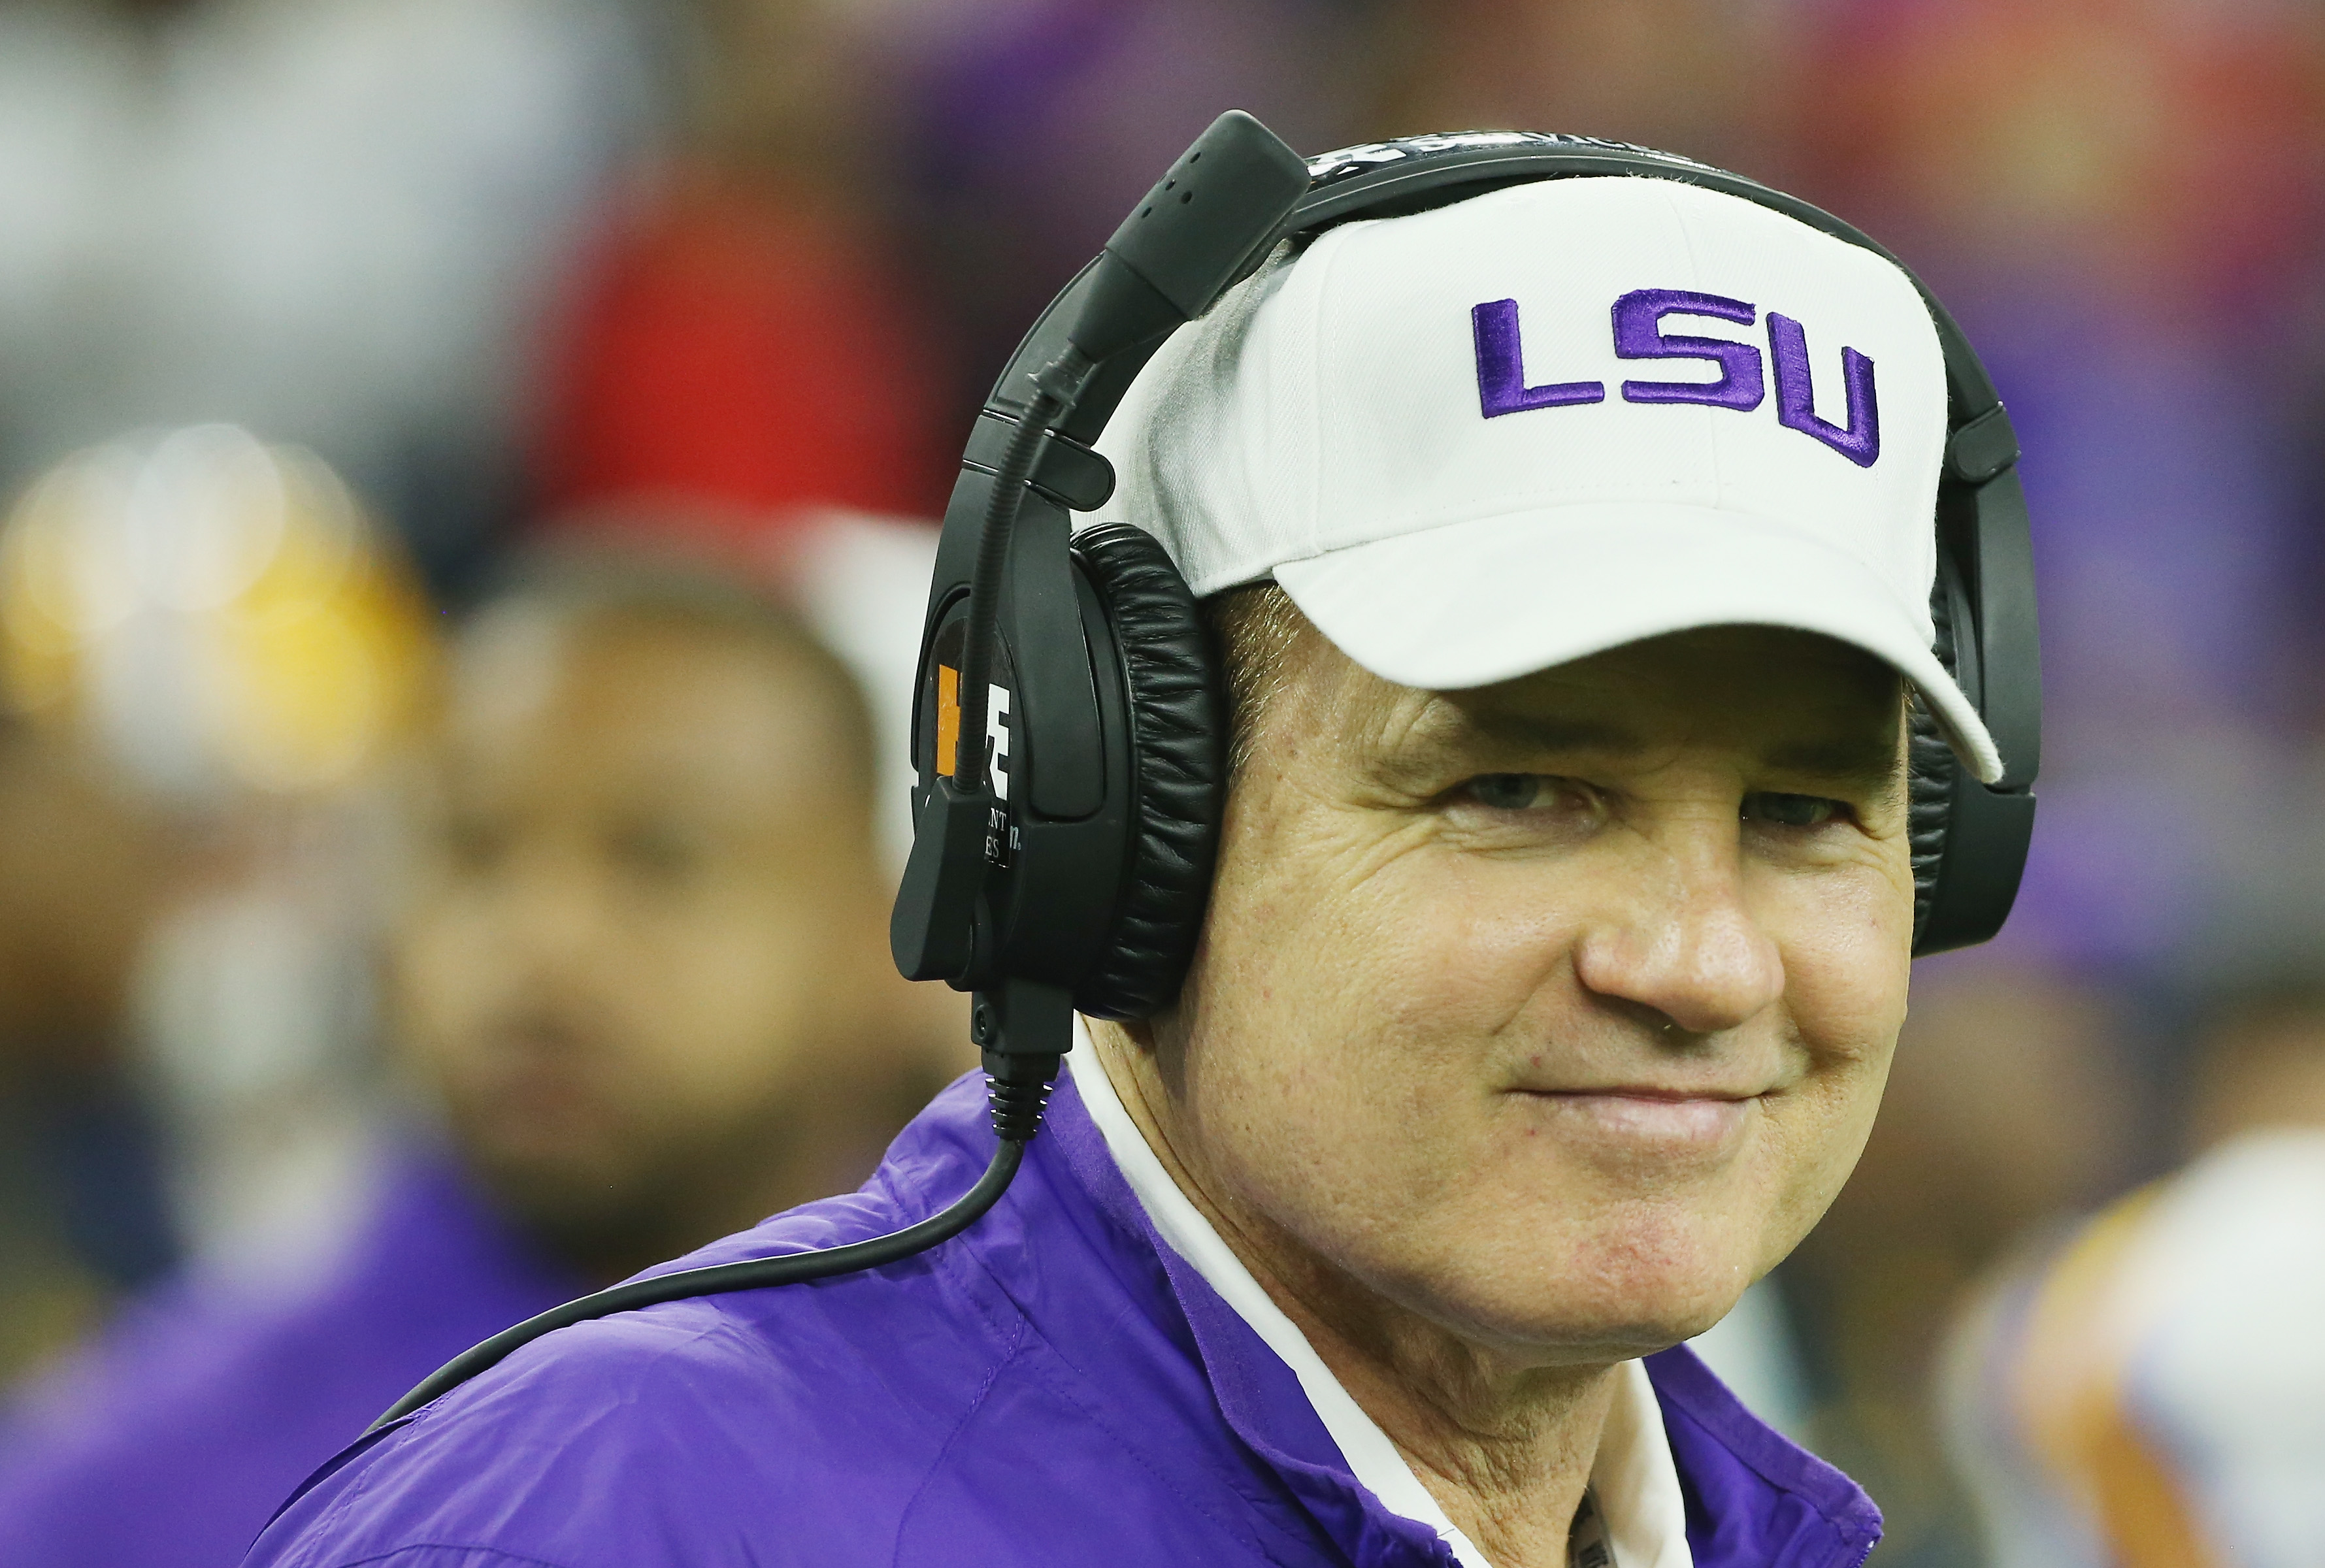 FOX Sports adds Les Miles, Mark Helfrich as 2017 college football analysts